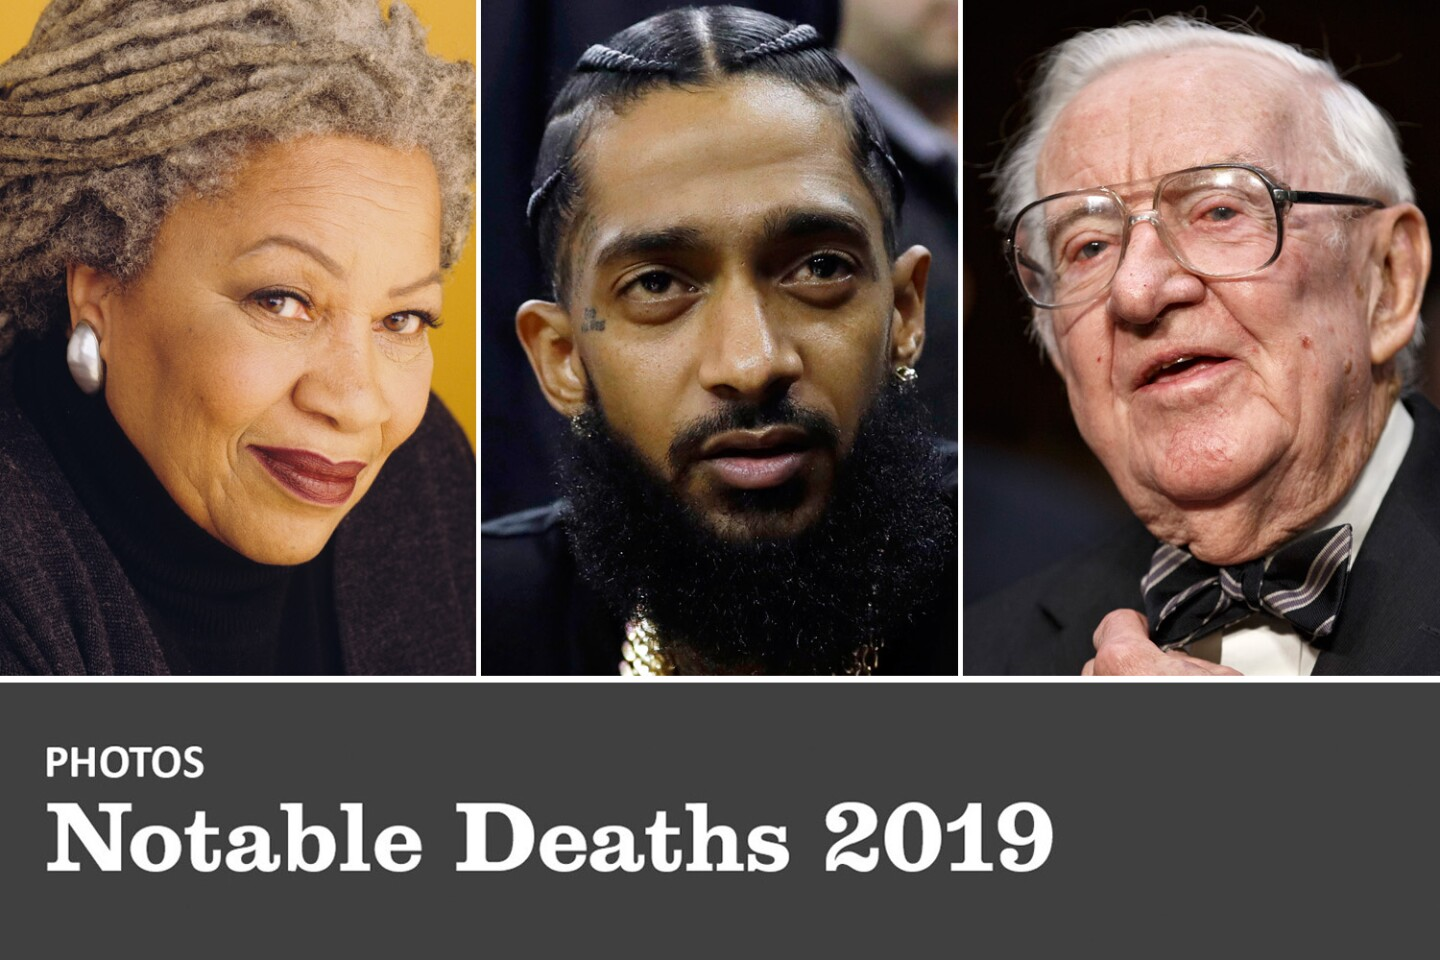 Notable deaths 2019